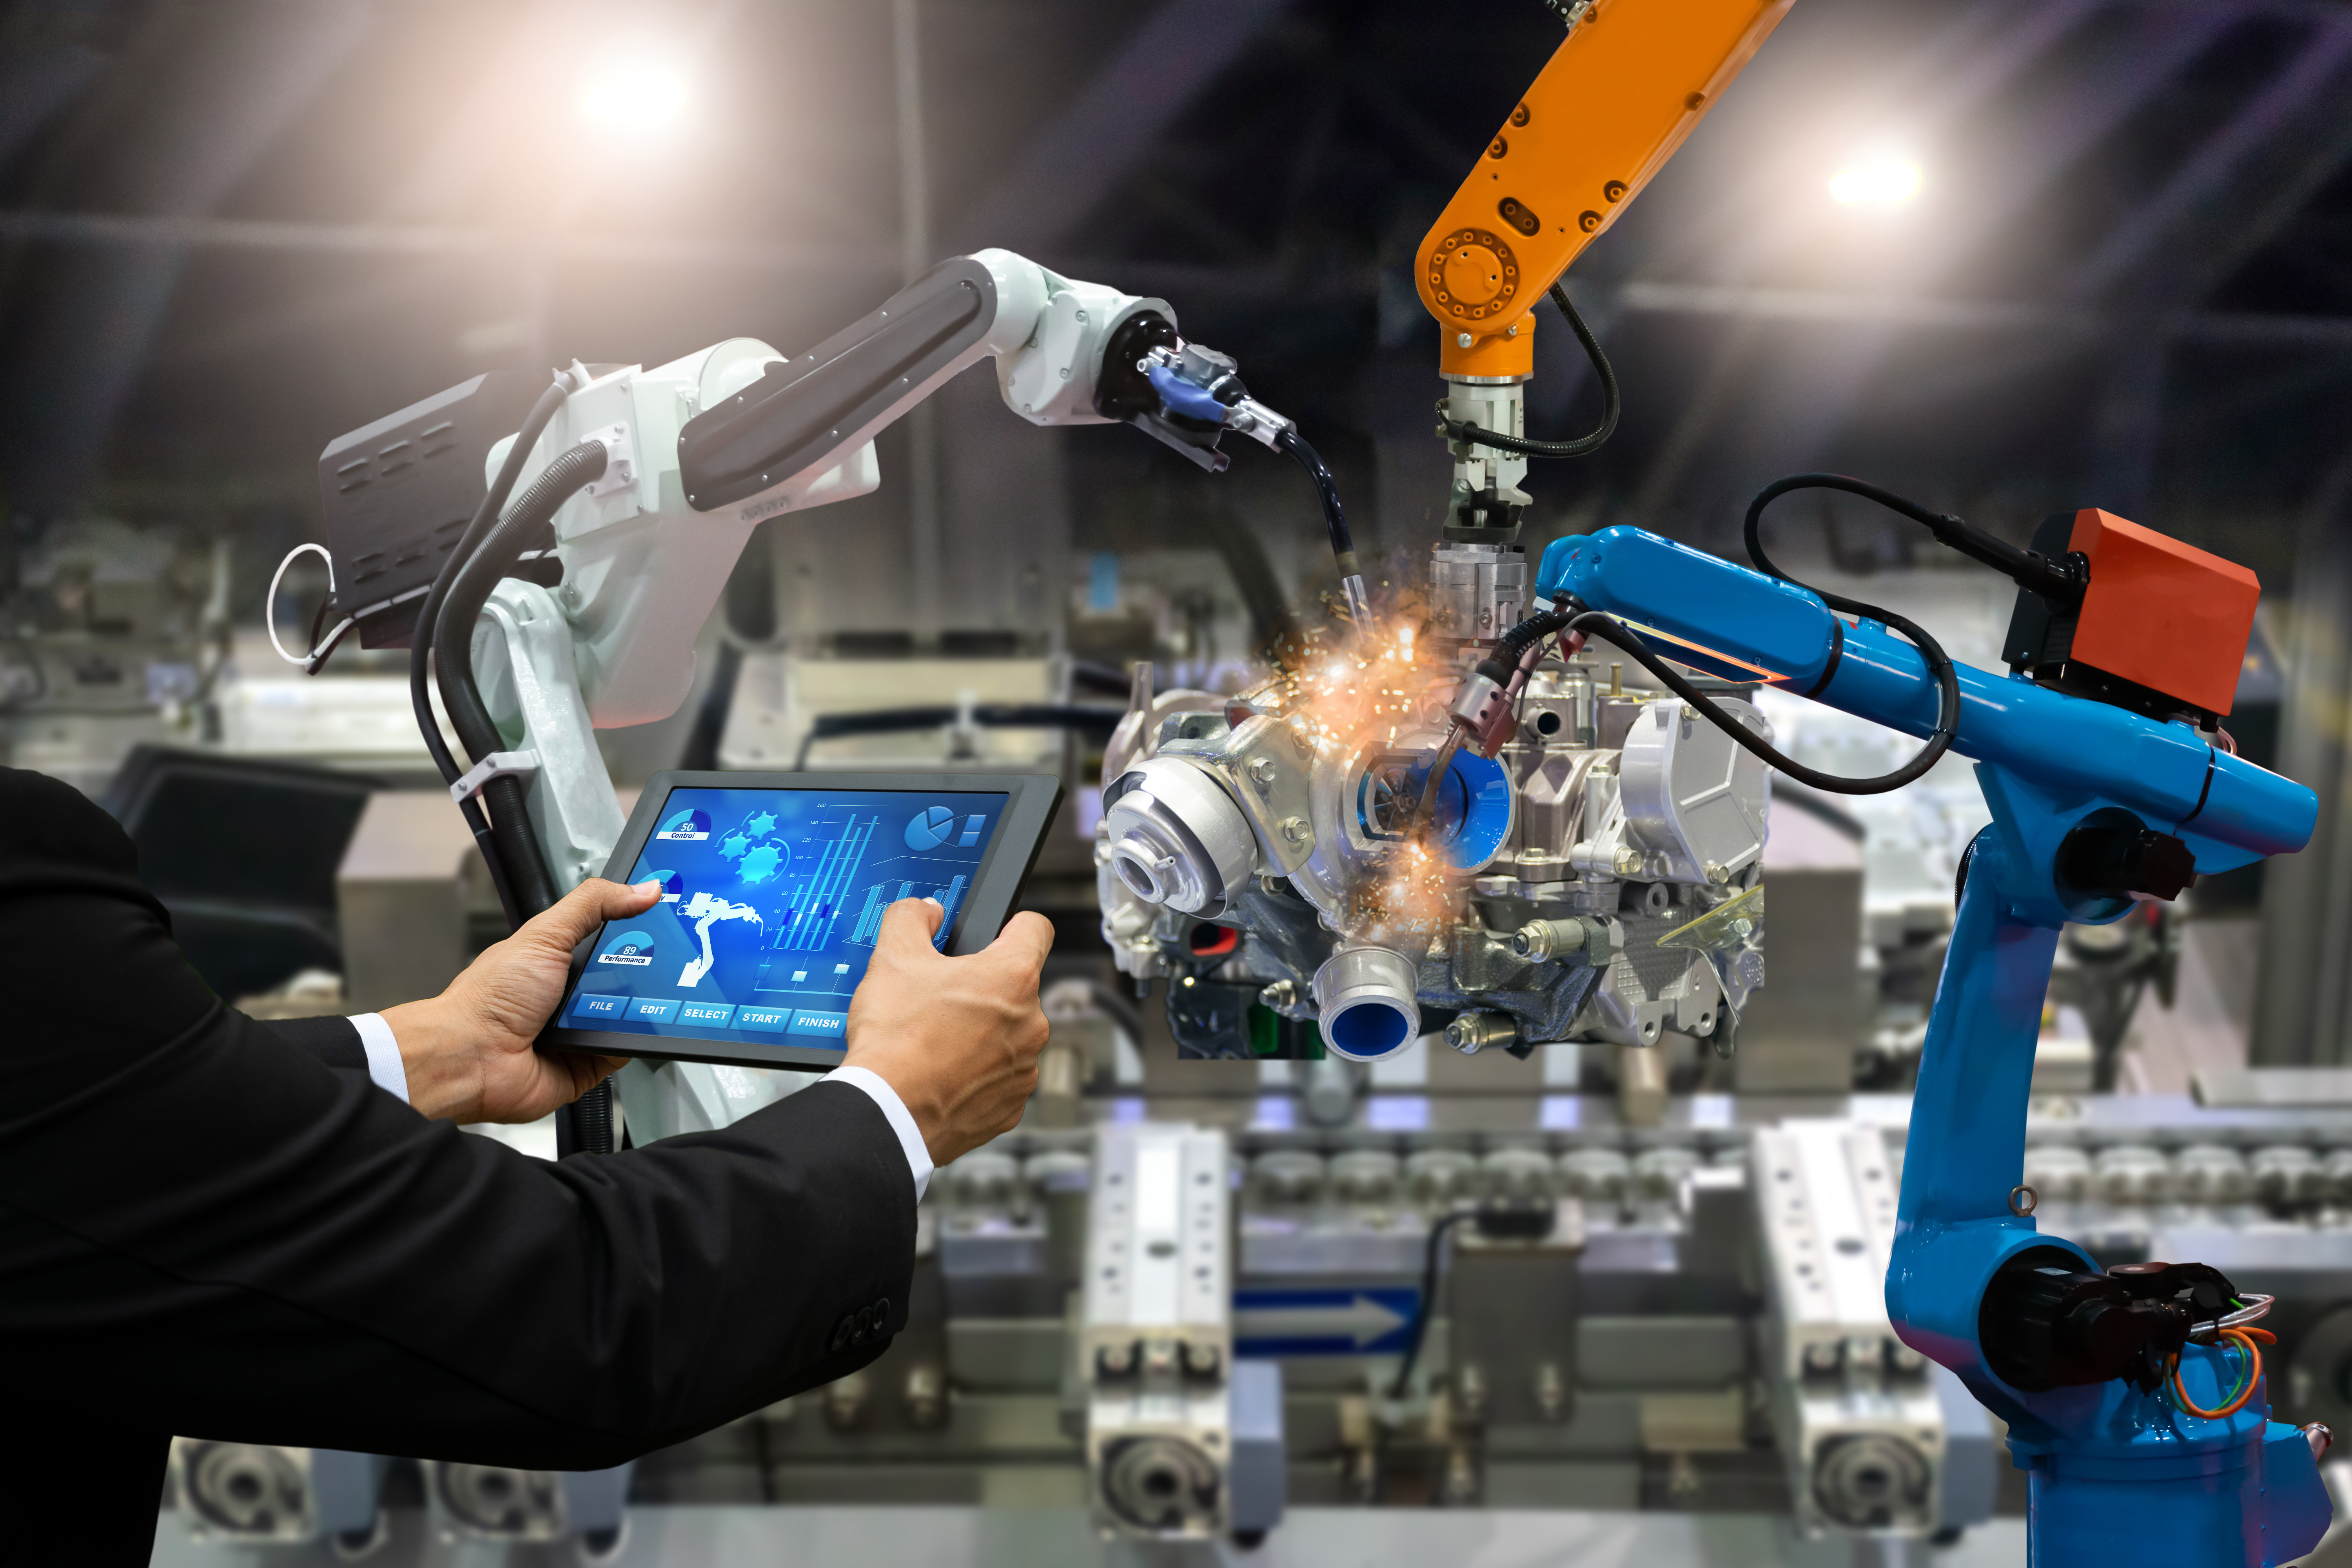 Industrial Automation Control Market Latest Research Report Booming Worldwide | Impressive Growth Rate, Developing Technologies, Challenges, Business Trends And Regional Outlook Till 2027